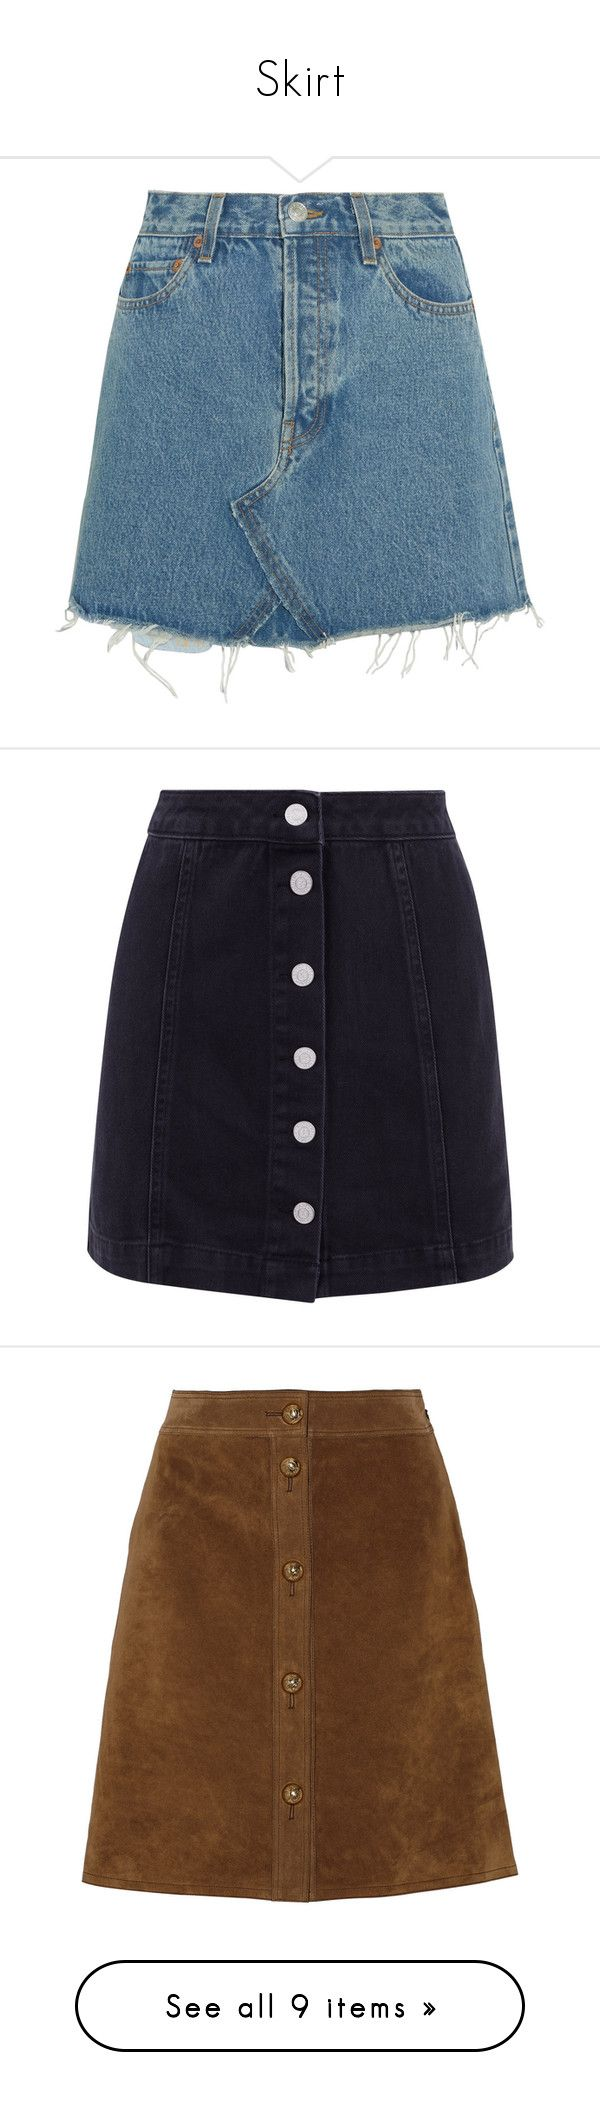 """Skirt"" by eleonore-plot on Polyvore featuring skirts, mini skirts, bottoms, saias, blue, vintage mini skirts, high-waist skirt, button skirt, short blue skirt et distressed denim mini skirt"